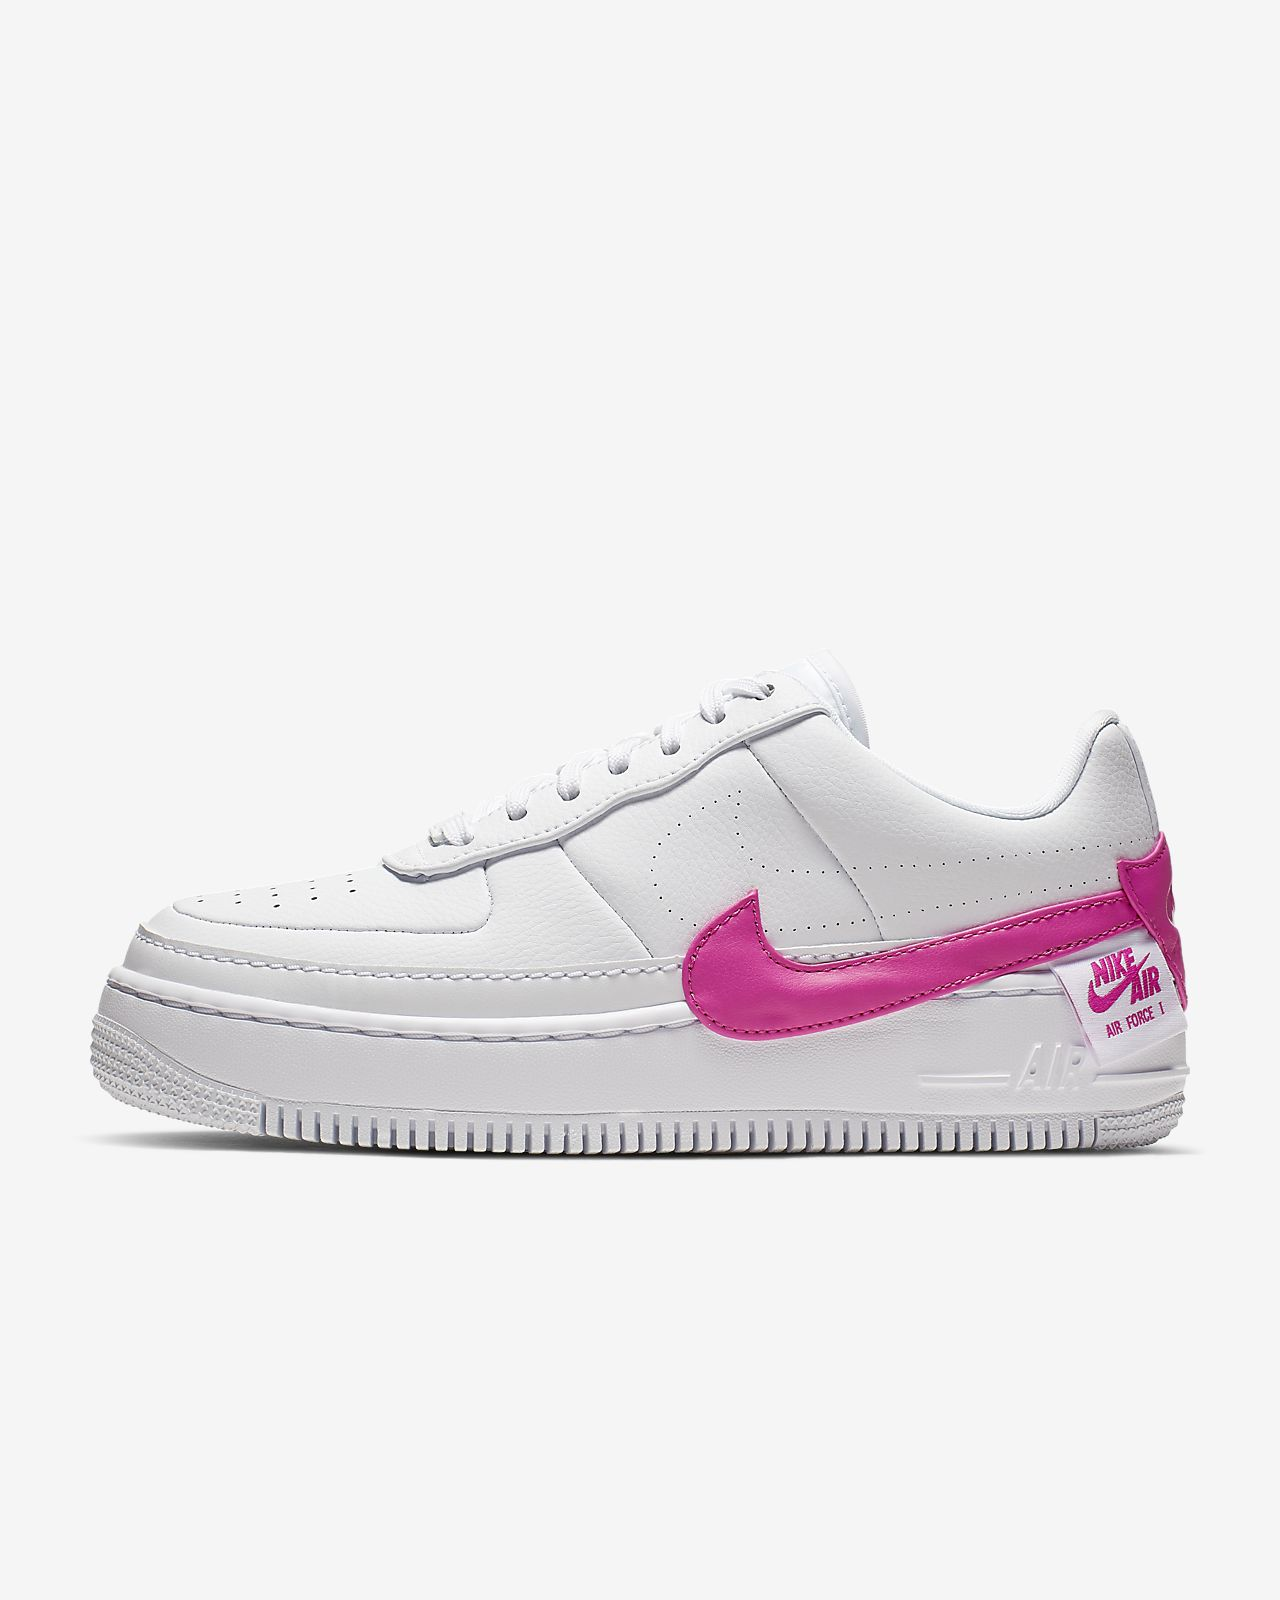 separation shoes 012b1 f67f9 ... Calzado para mujer Nike Air Force 1 Jester XX